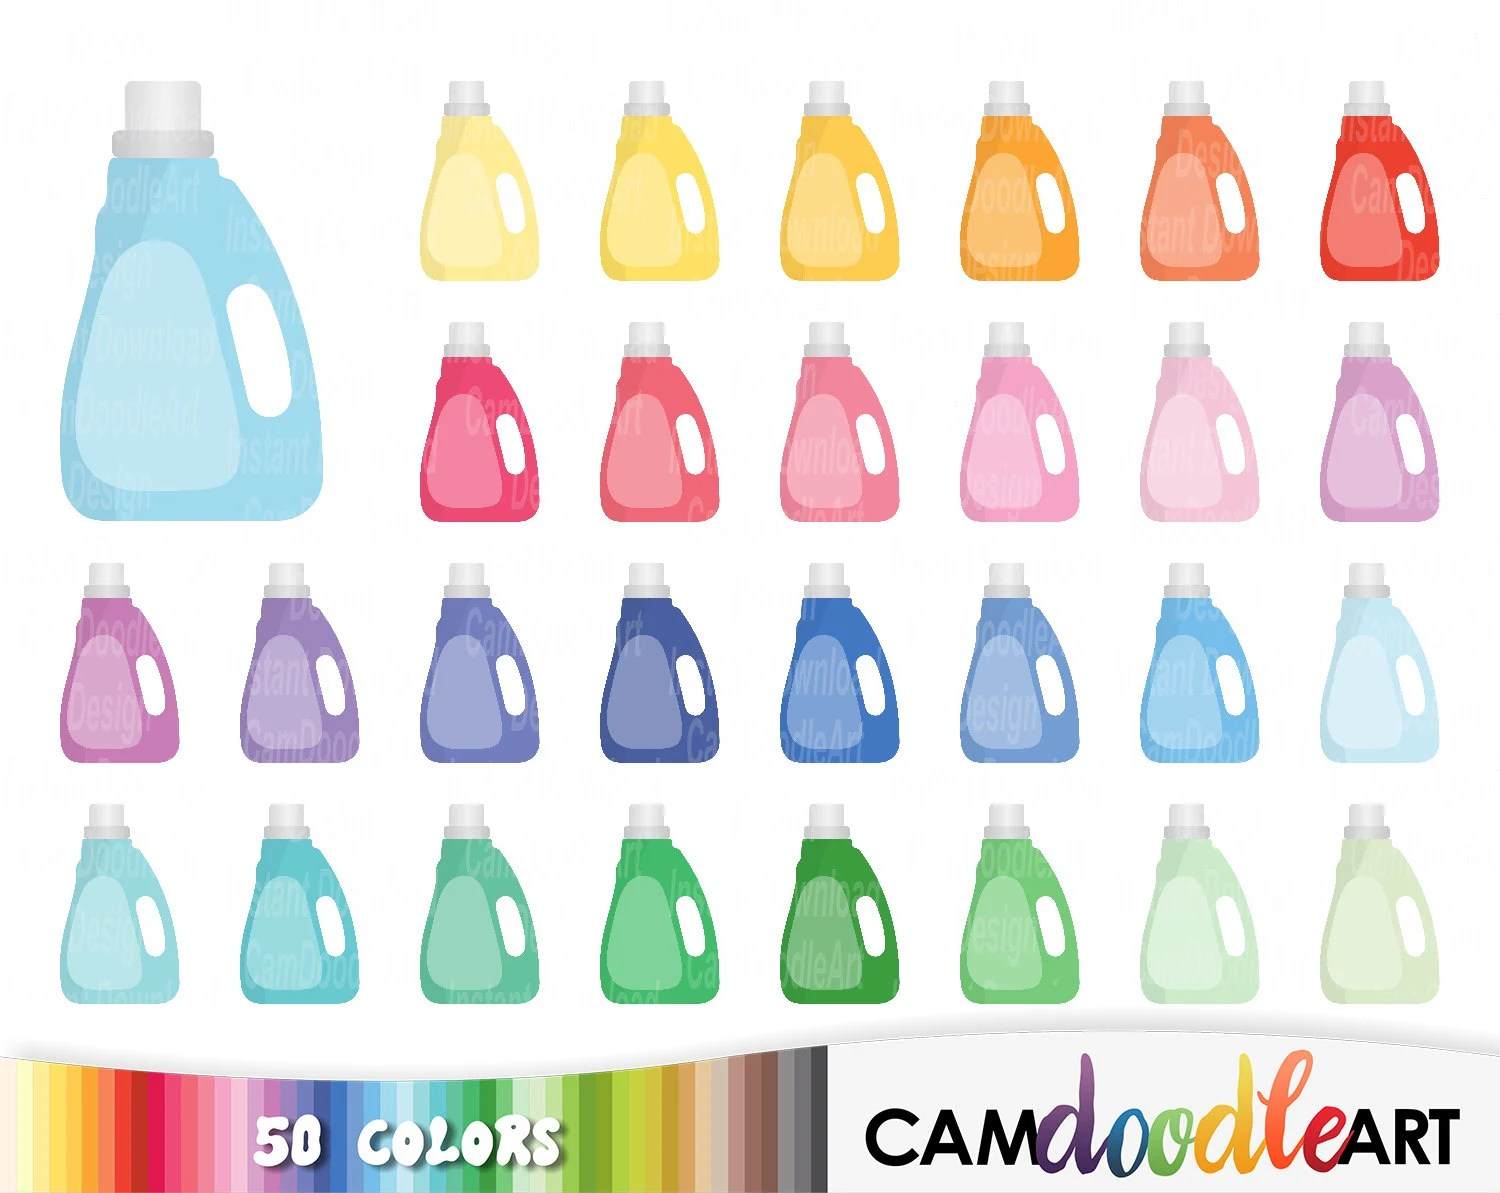 Waschmittel Clipart 50 Laundry Detergent Clipartlaundry Day Clipartcolorful